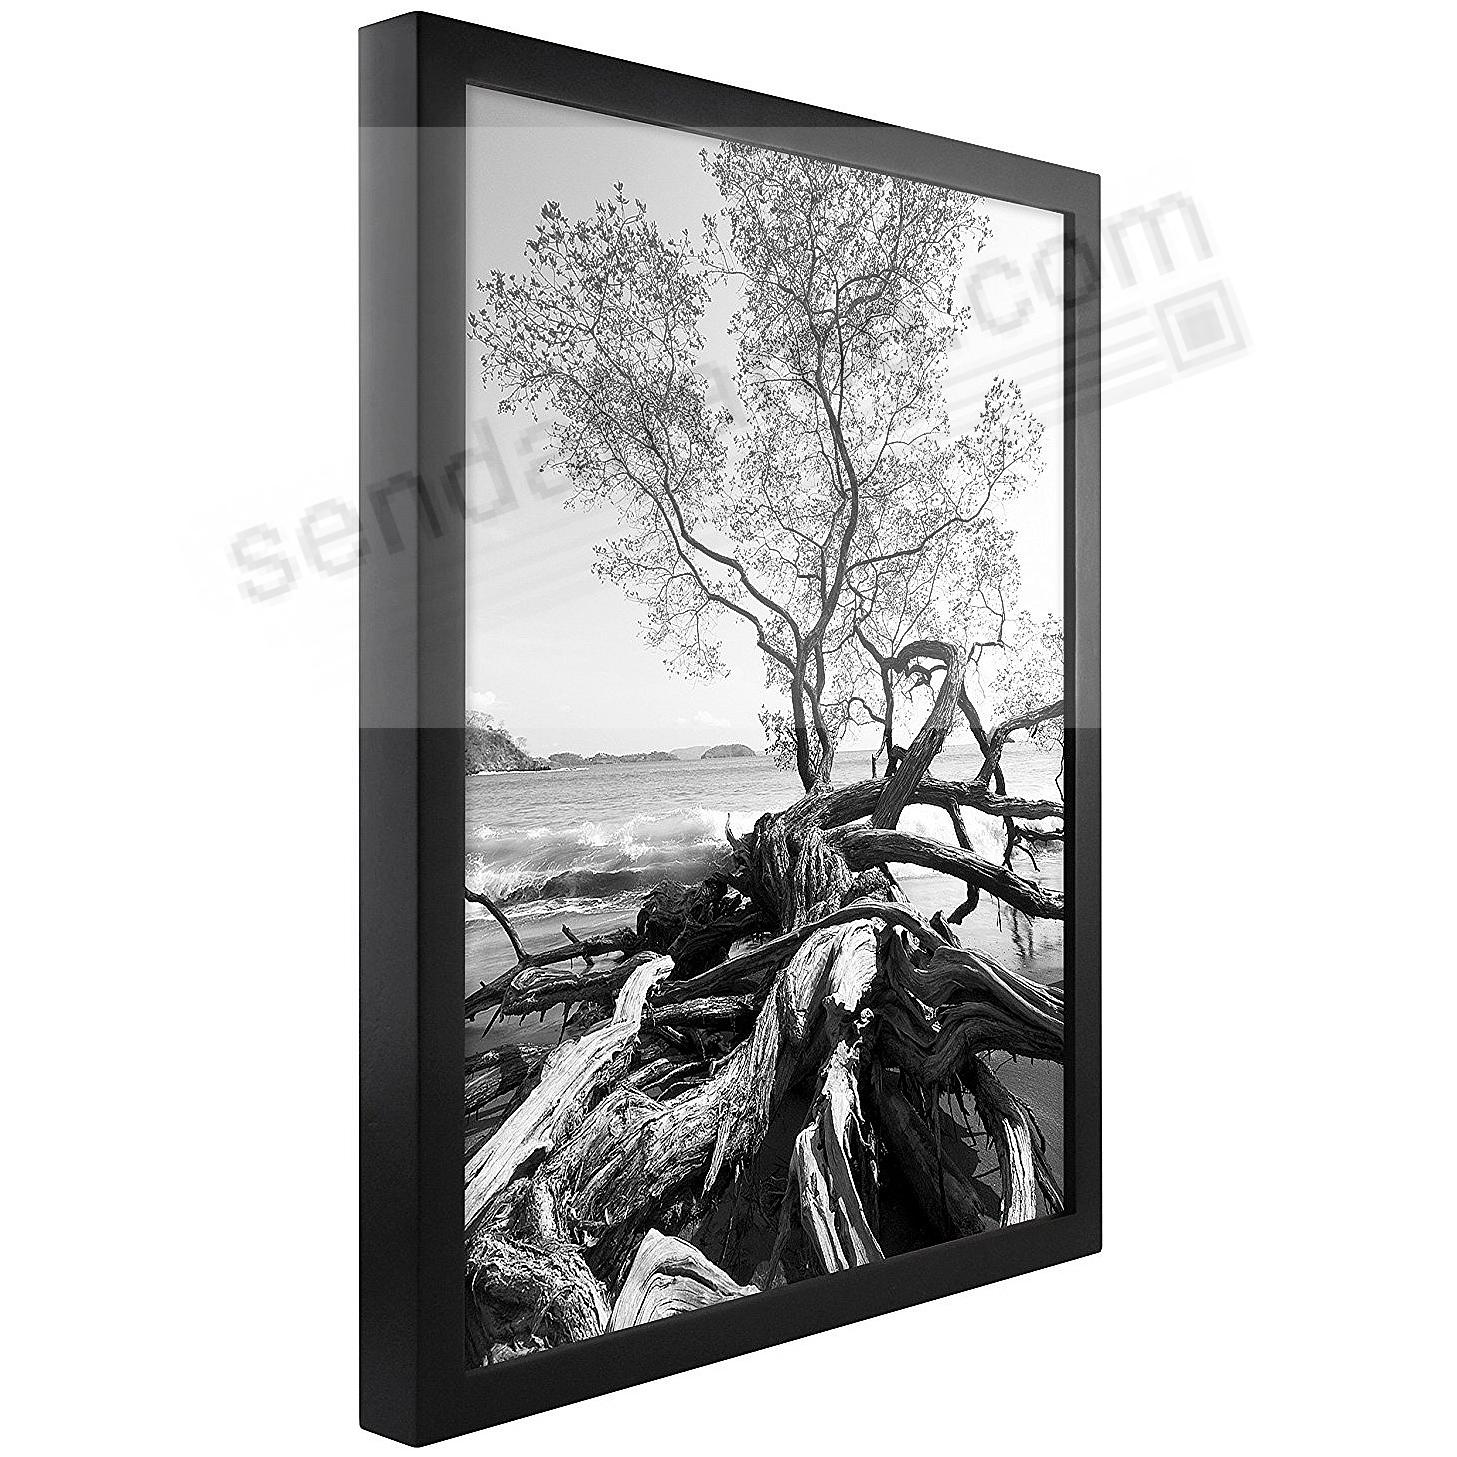 Art Shadow-Box 24x36 Walnut Wood frame by MCS® - 4 Pack - Picture ...